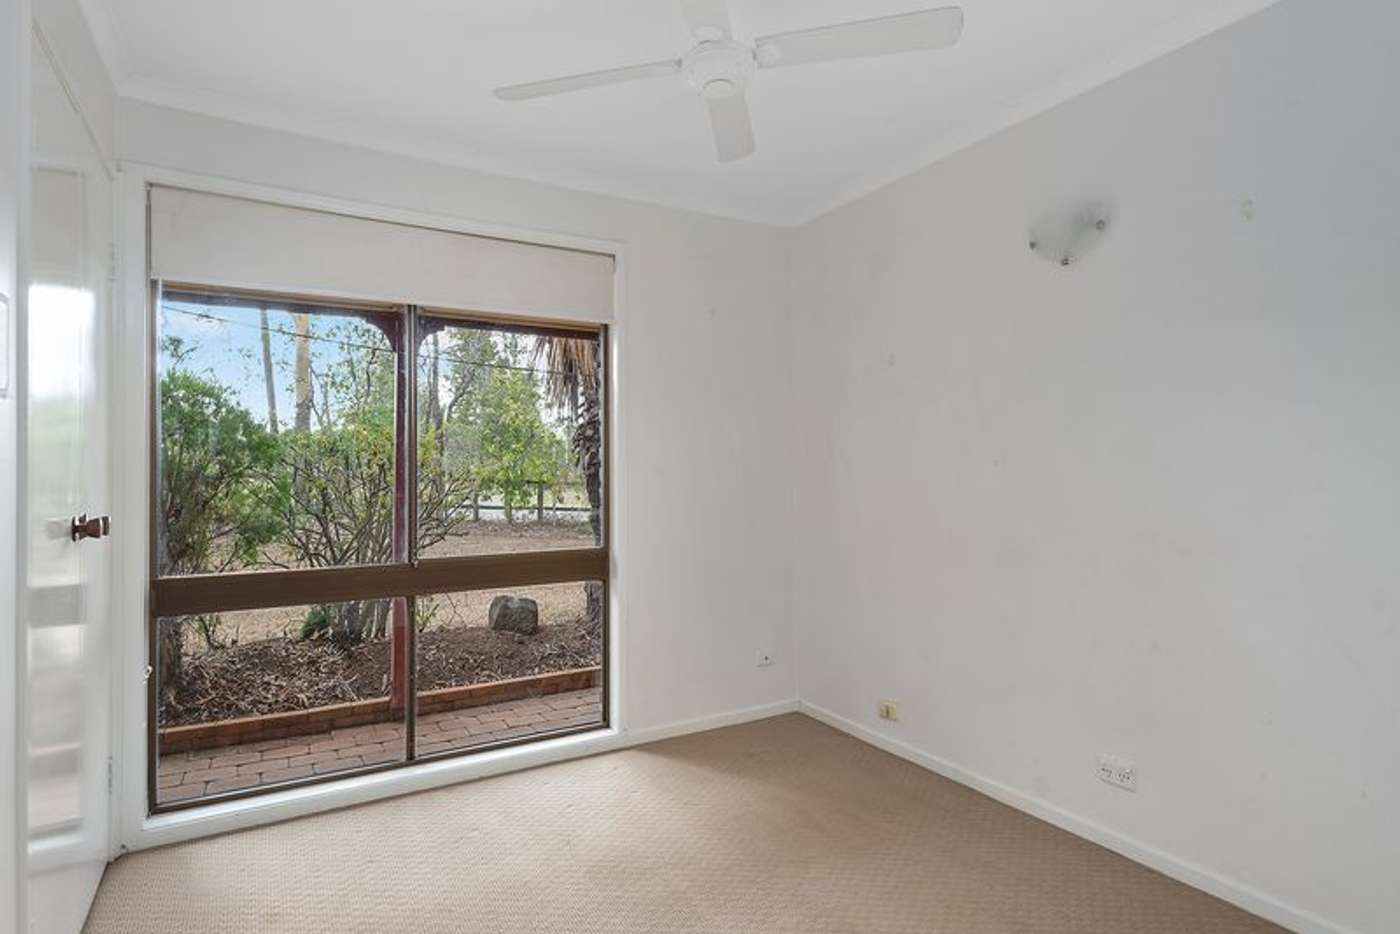 Seventh view of Homely house listing, 3671 Moggill Road, Moggill QLD 4070